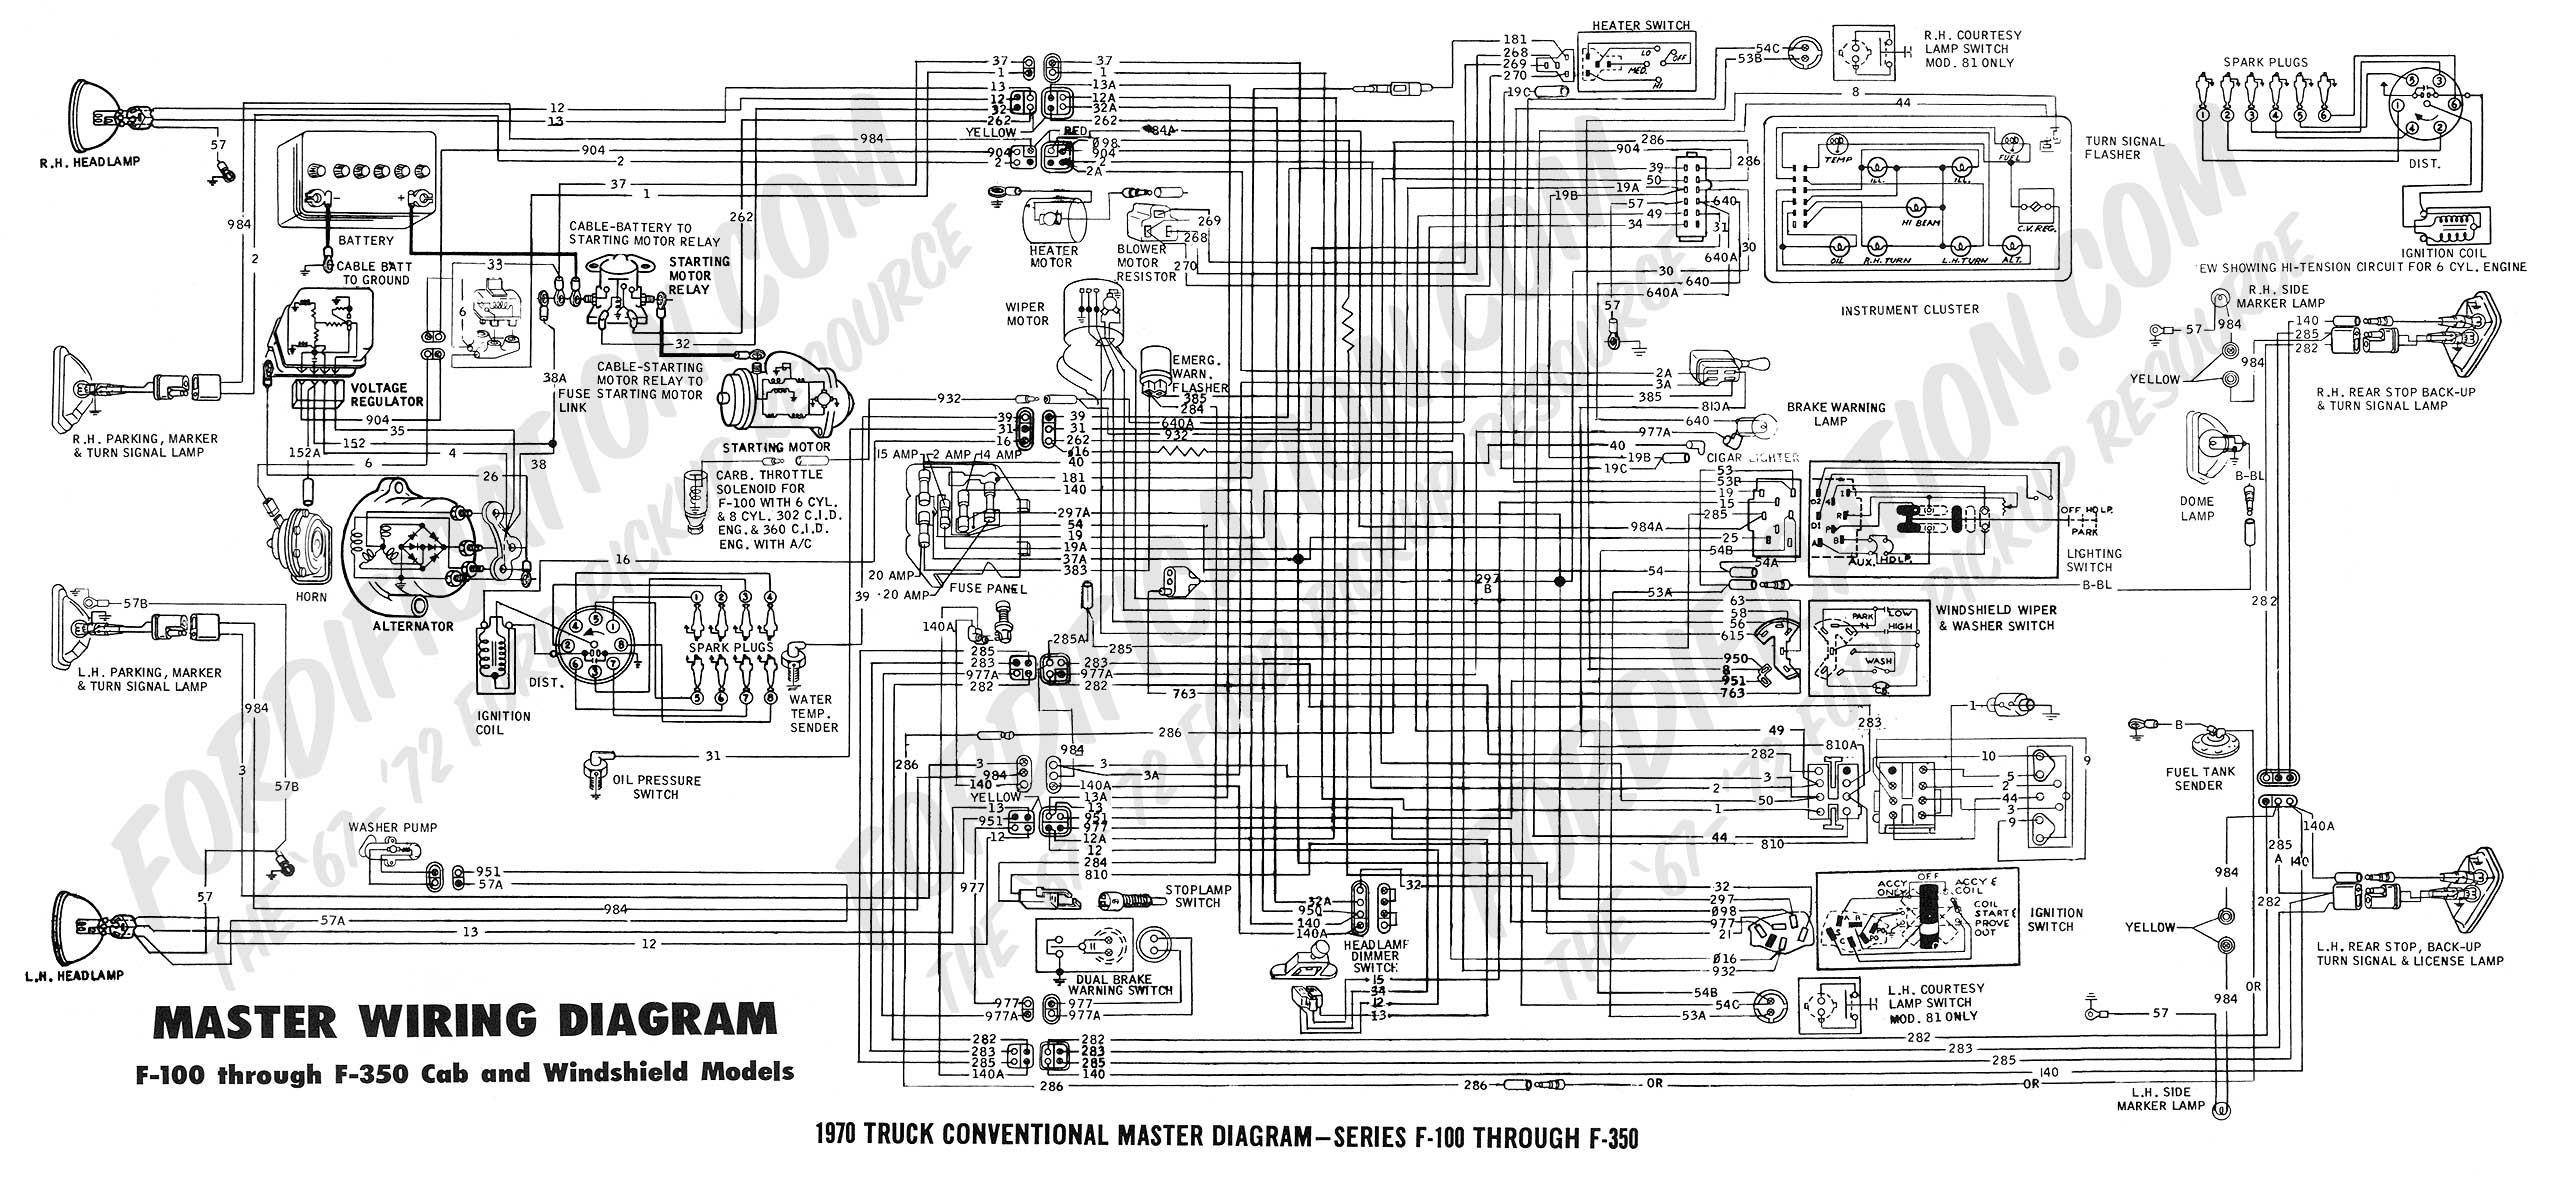 97 mustang wiring diagram 1989 f350 wiring diagram 1989 wiring diagrams wiring diagram 70 master